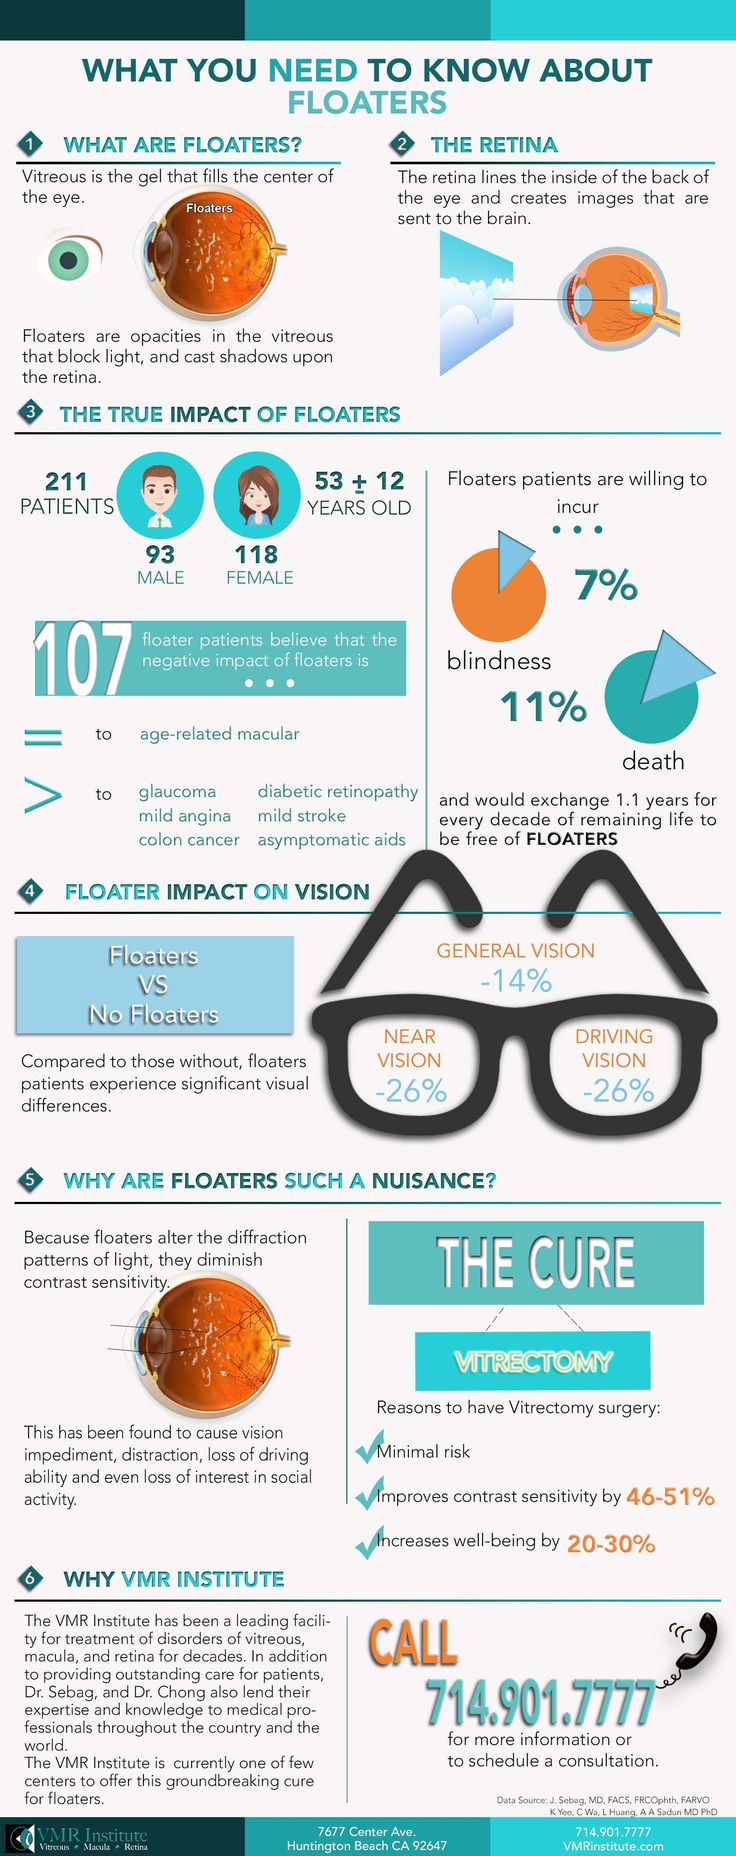 29 best Retina images on Pinterest | Eye facts, Human eye and Eyes